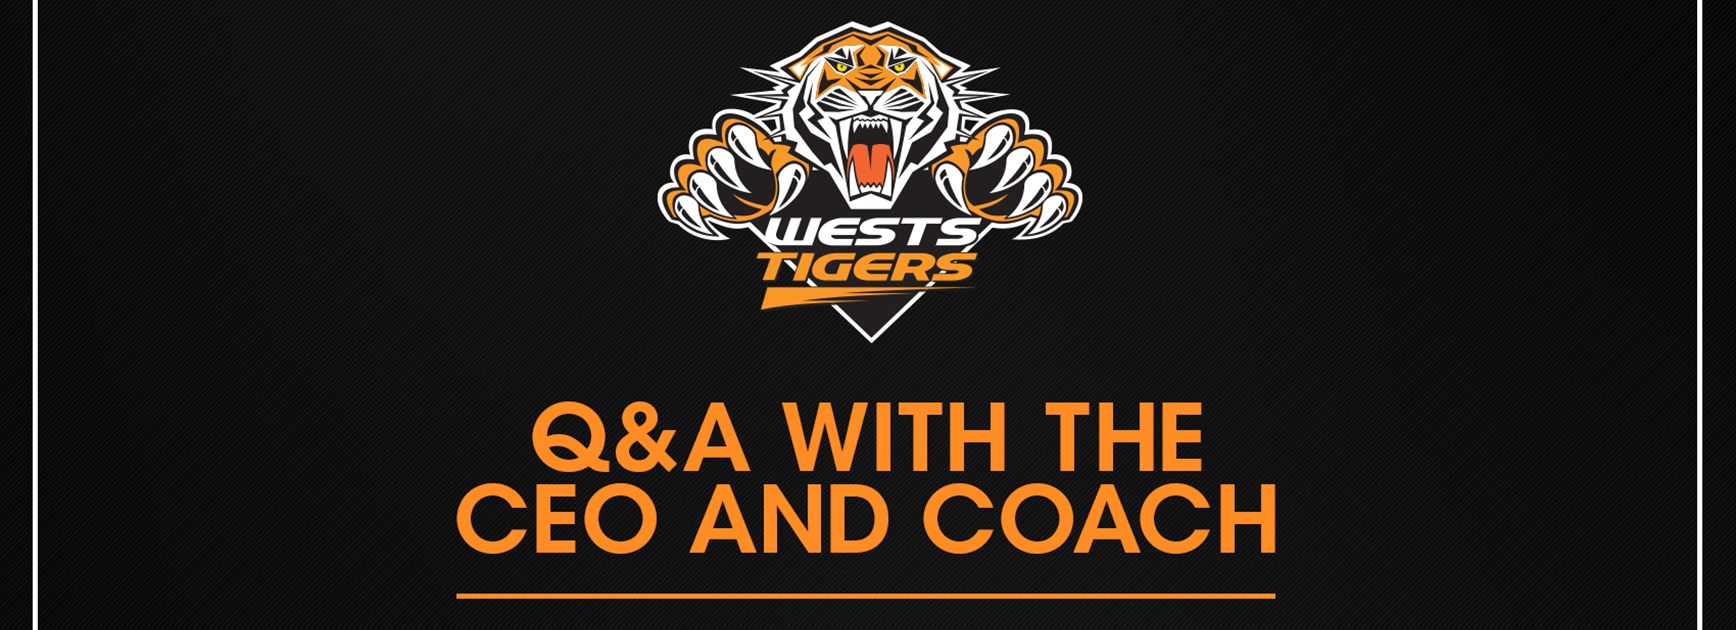 Take part in Wests Tigers Coach and CEO Q&A!